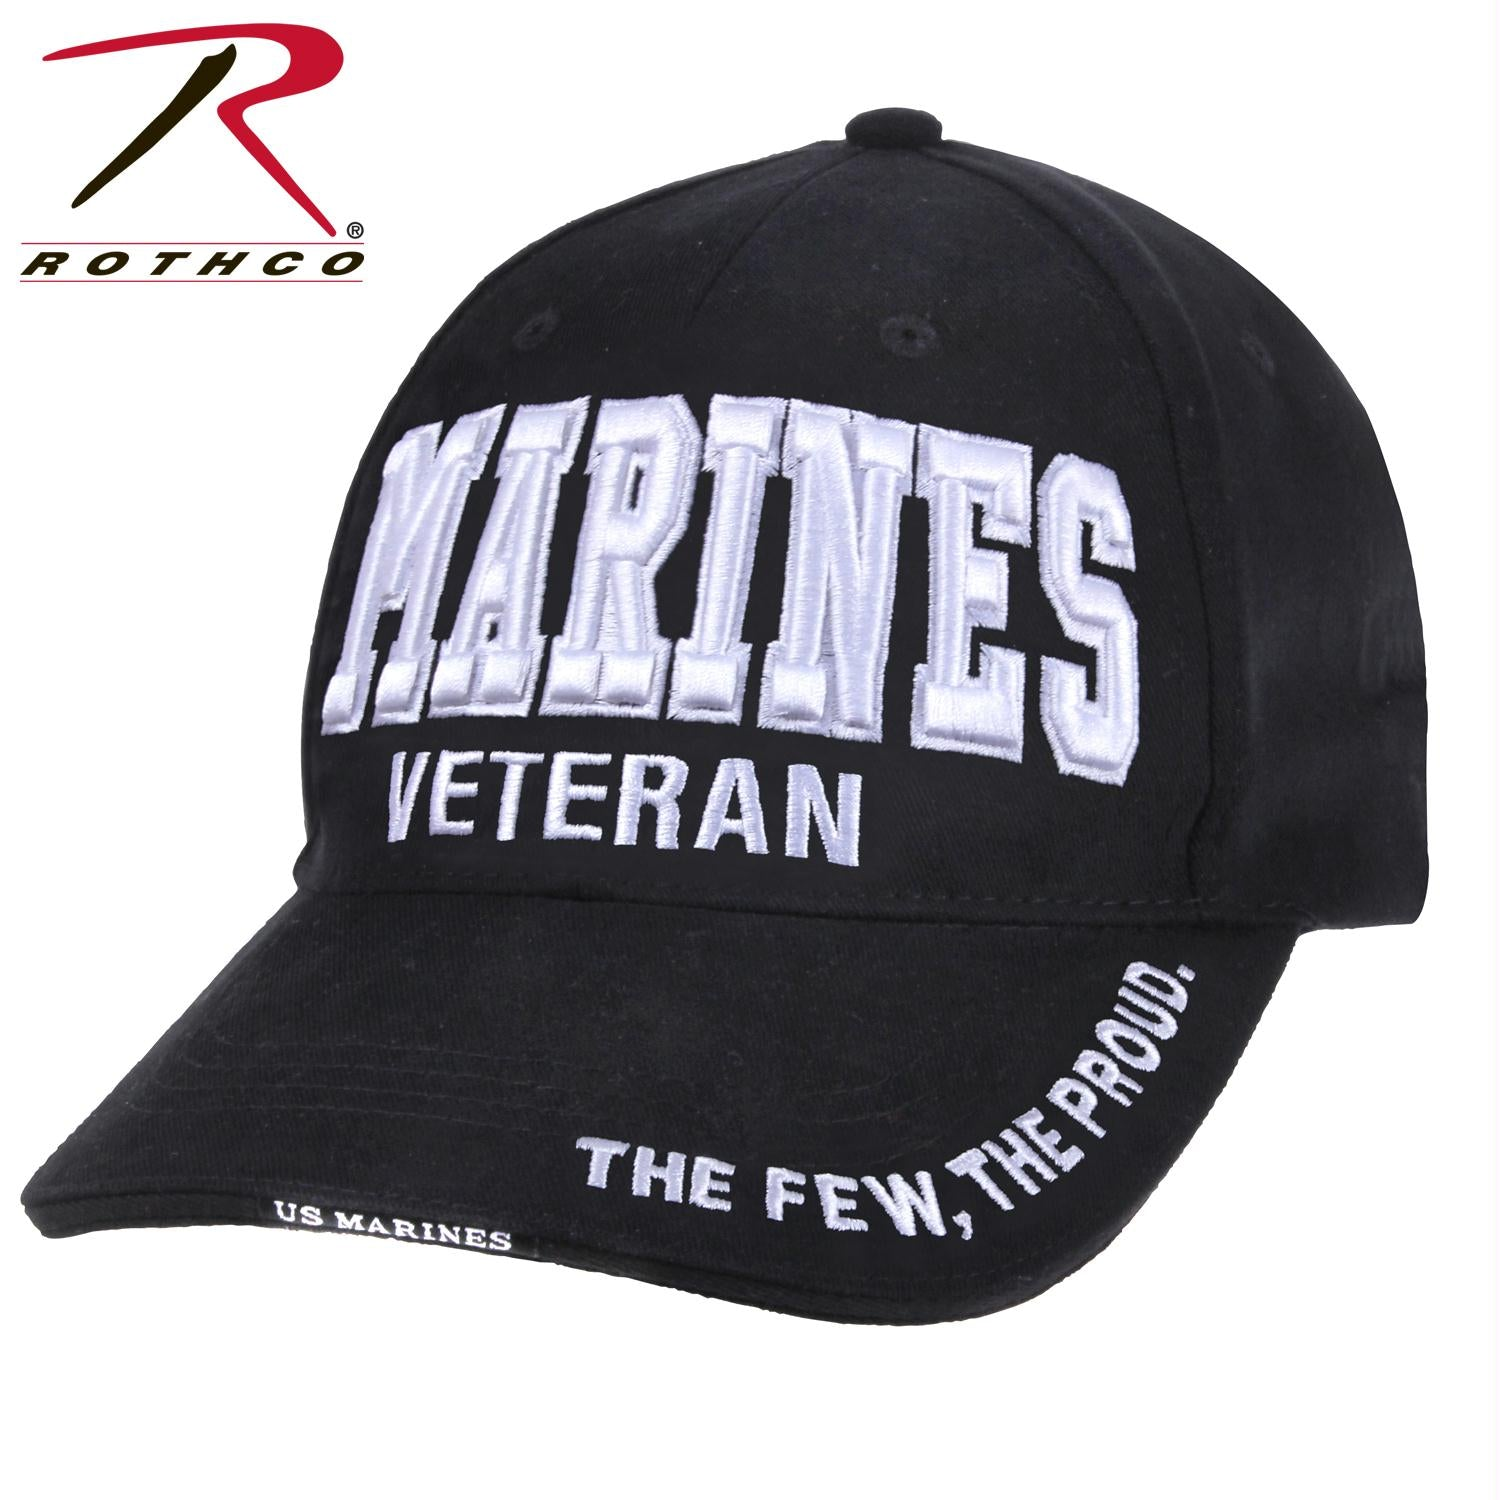 Rothco Deluxe Marines Veteran-Low Profile Cap